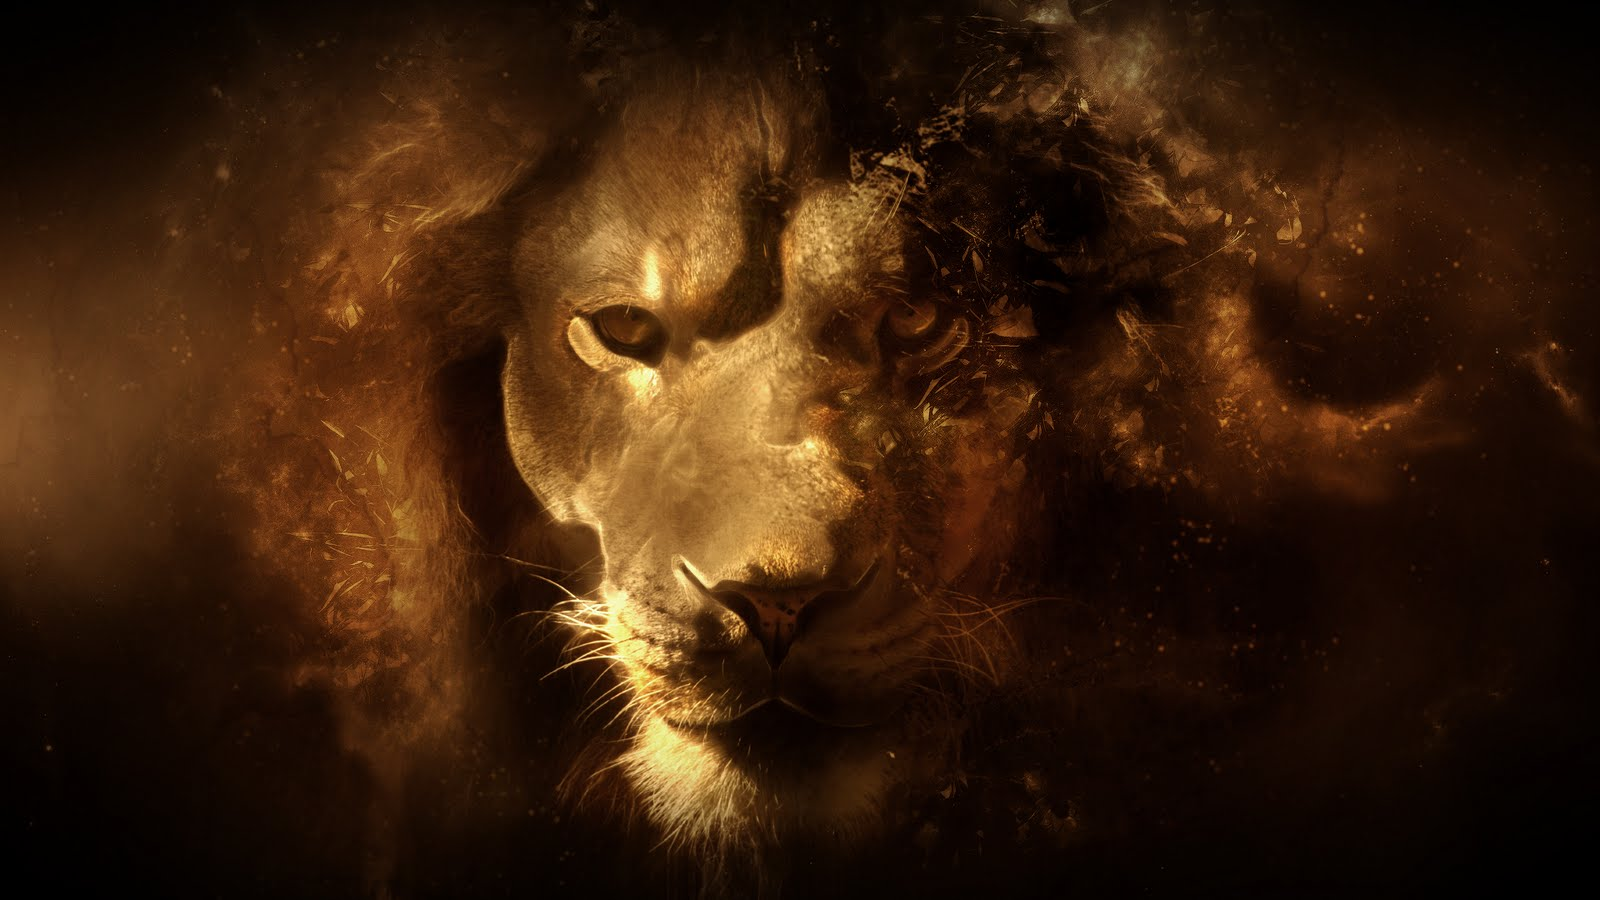 793 Lion HD Wallpapers   Backgrounds - Wallpaper Abyss